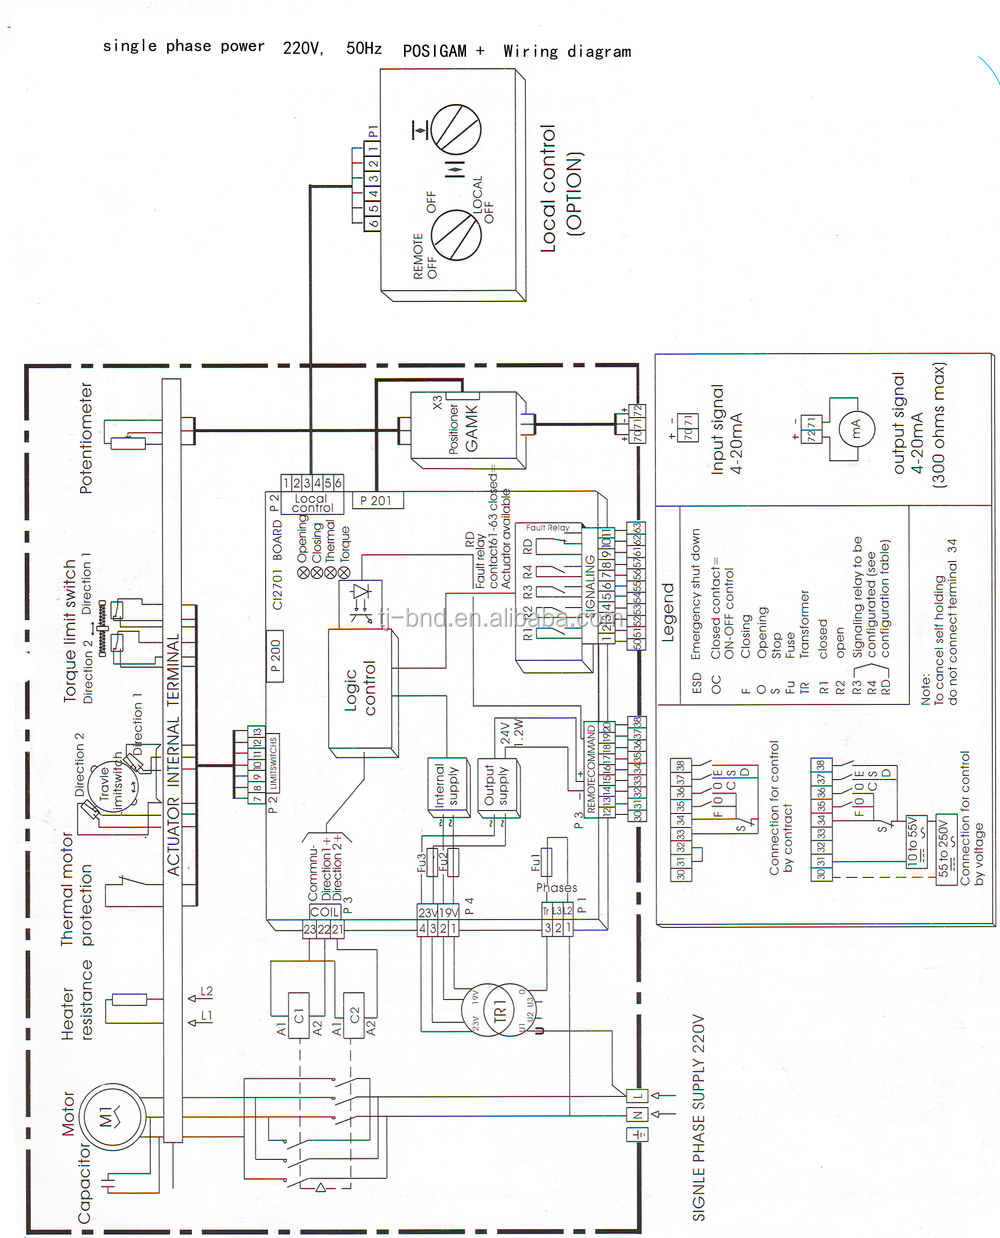 residential electrical wiring diagrams of 1940 residential